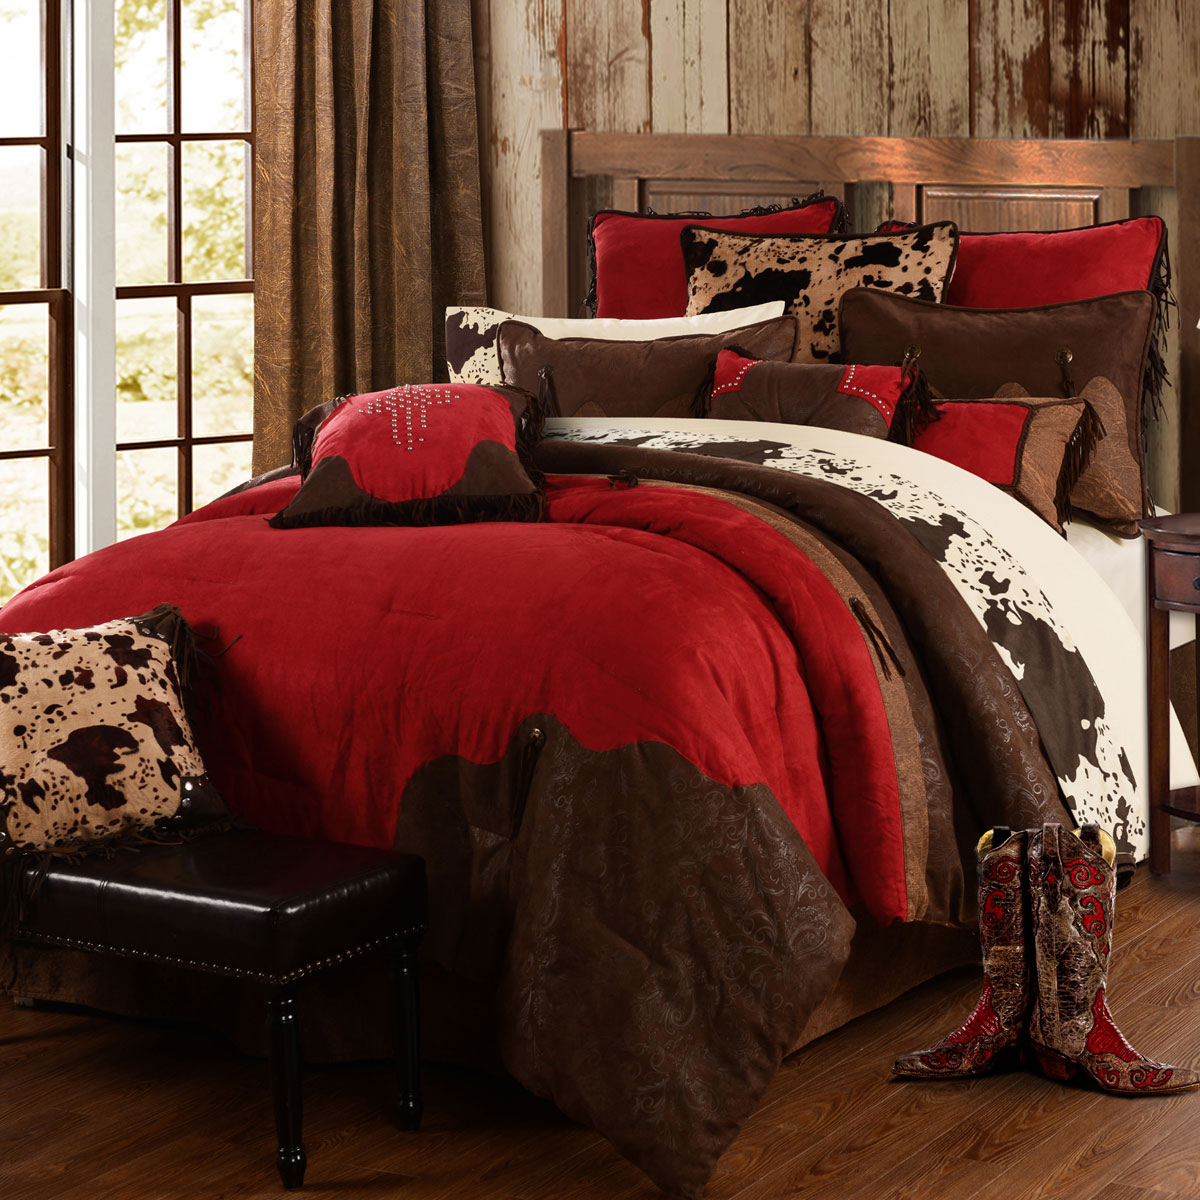 Red Rodeo Bed Set - Full